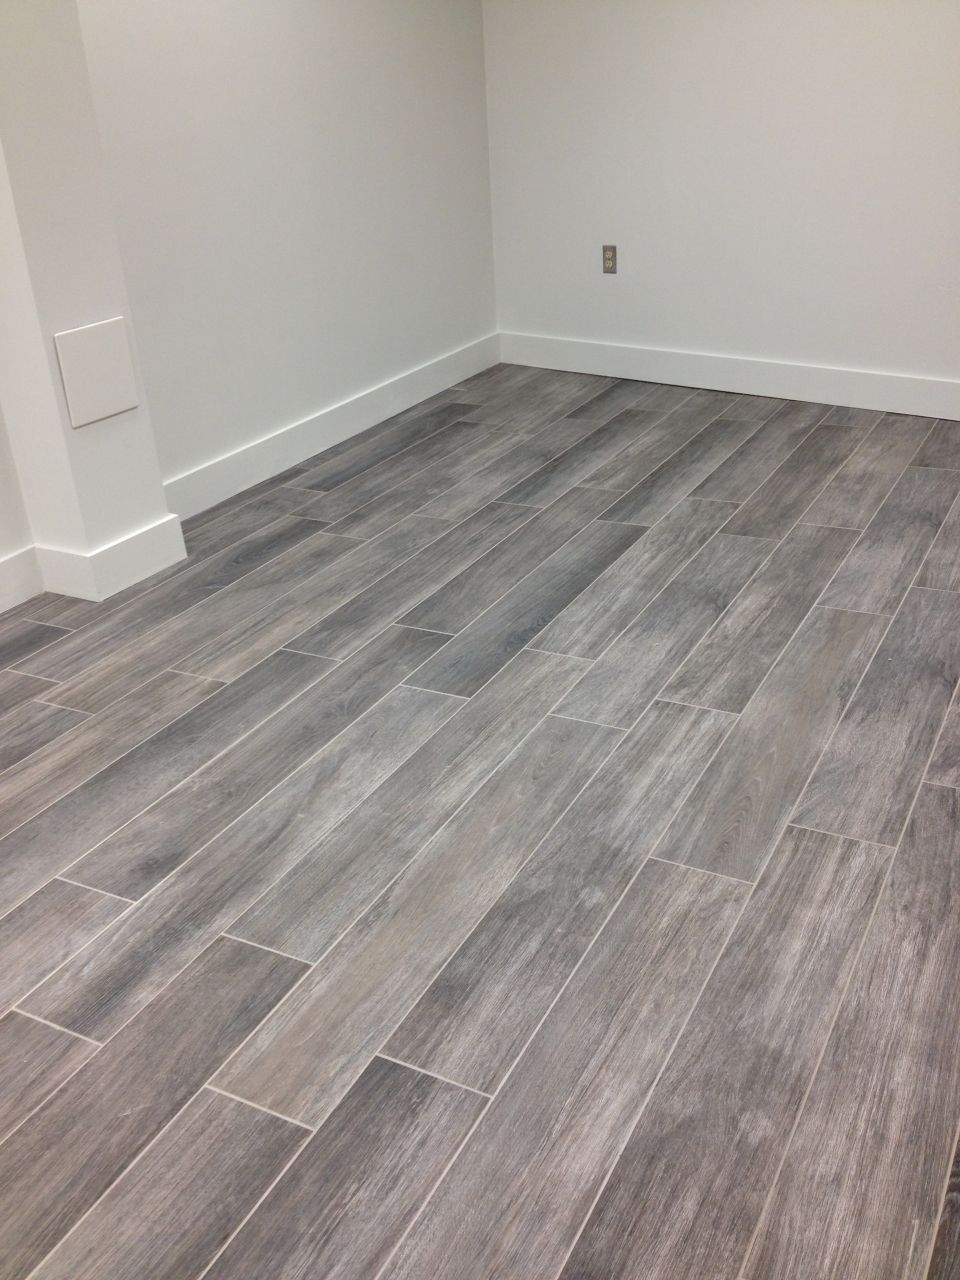 Gray wood tile floor no3lcd6n8 homes pinterest wood tile floors tile flooring and woods Tile wood floor